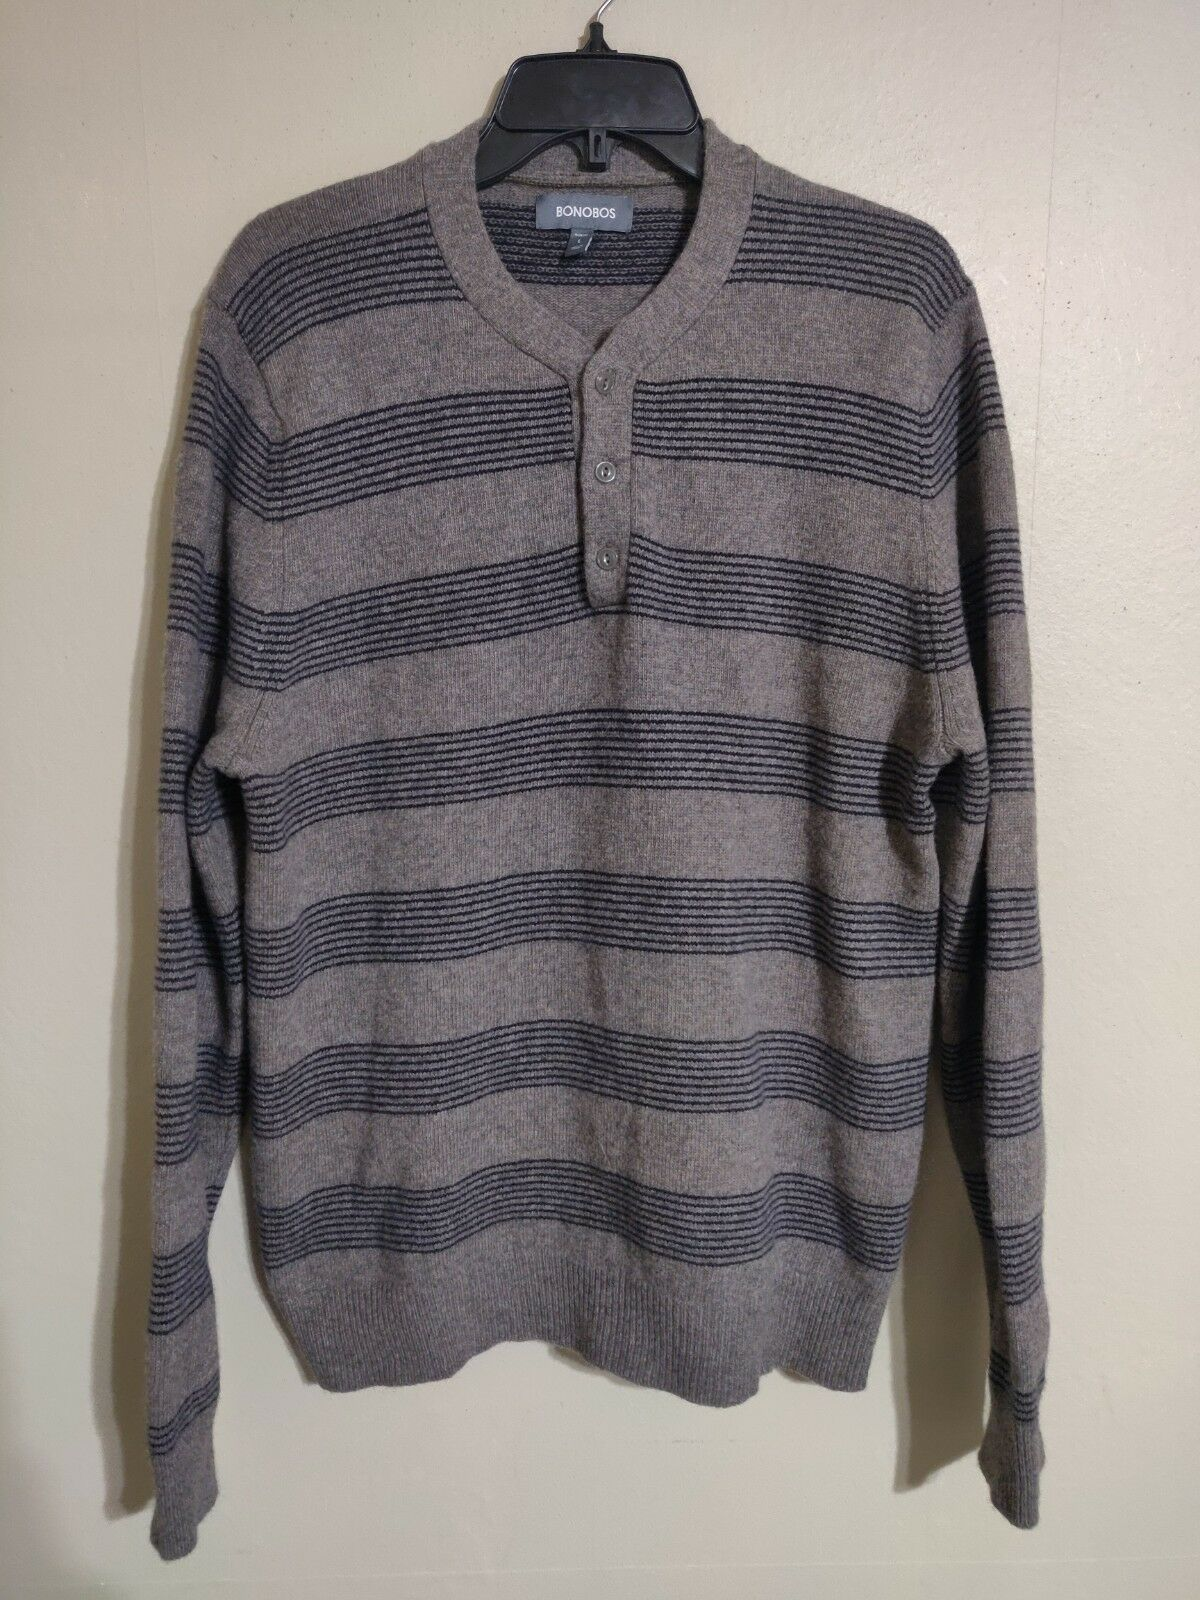 Bonobos Slim Fit Henley Style Merino Wool Blend Pull Over Sweater -Men's Large L